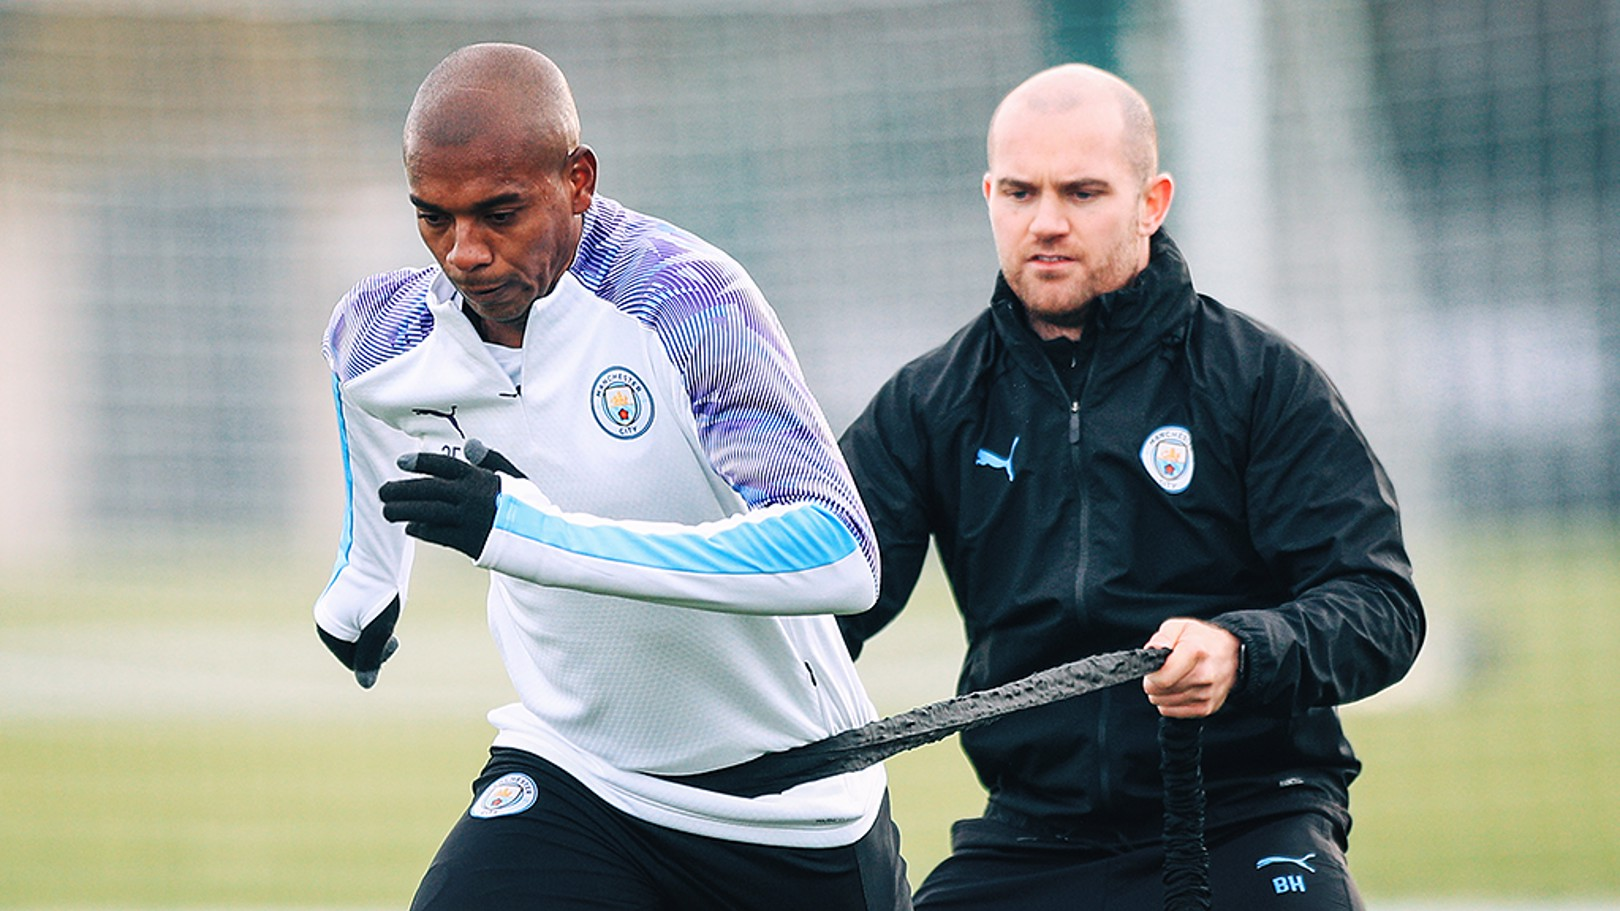 BRAZILIAN BLEND: Fernandinho powers through a fitness drill